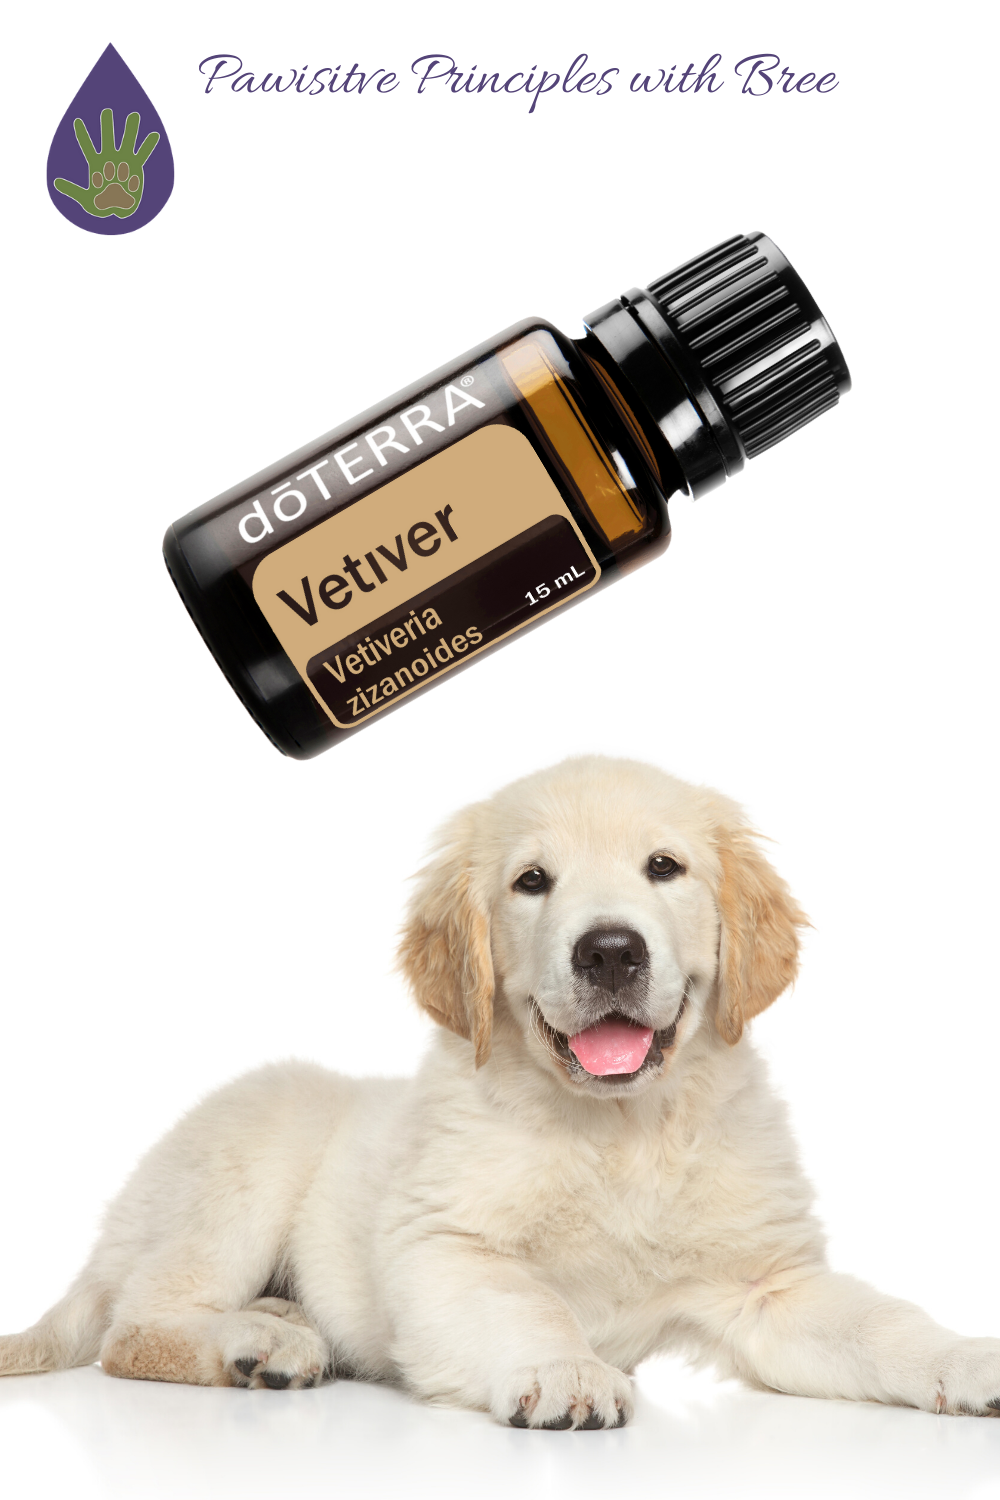 Vetiver is one of the most effective essential oils to use in training your dog